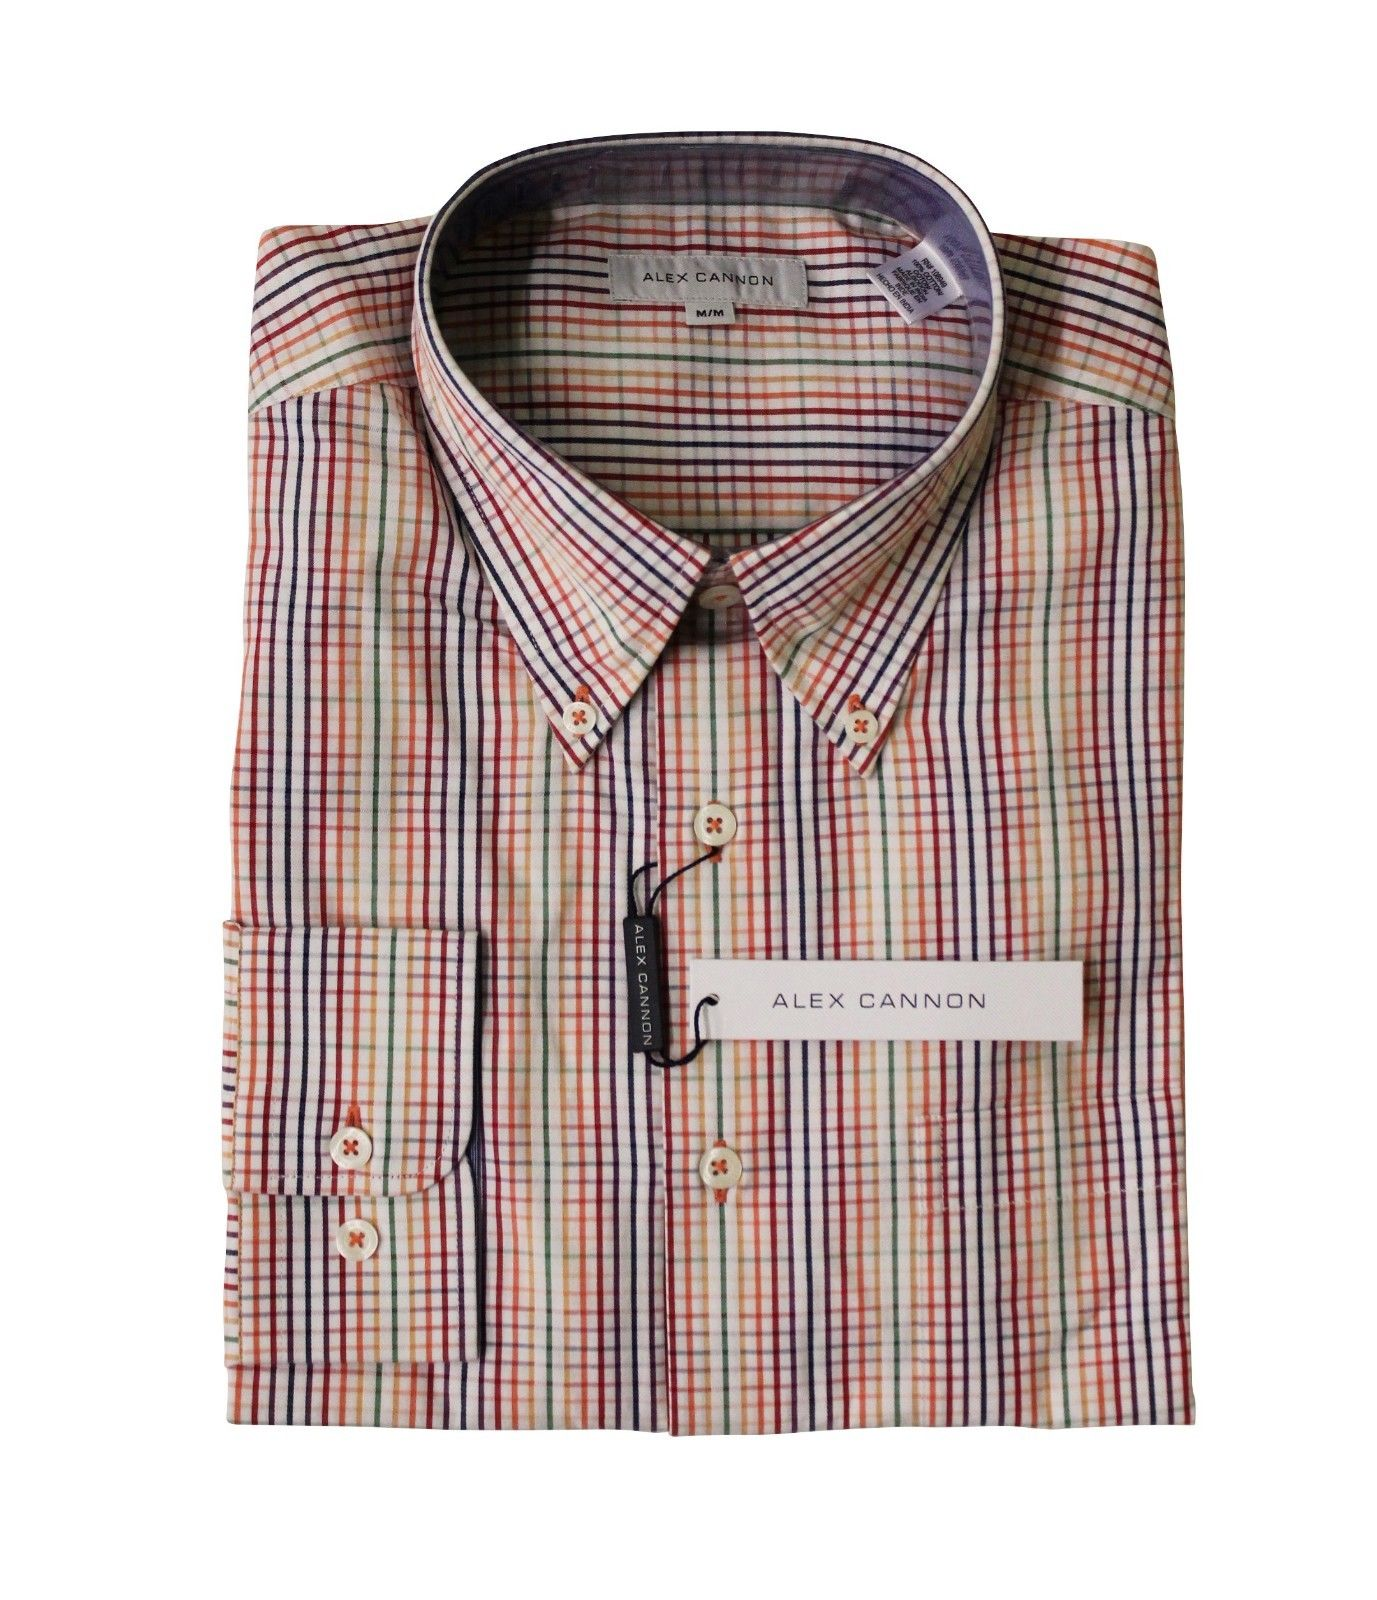 Alex Cannon Men's Dress Shirt, Spring Mini Check, Size M, NWT